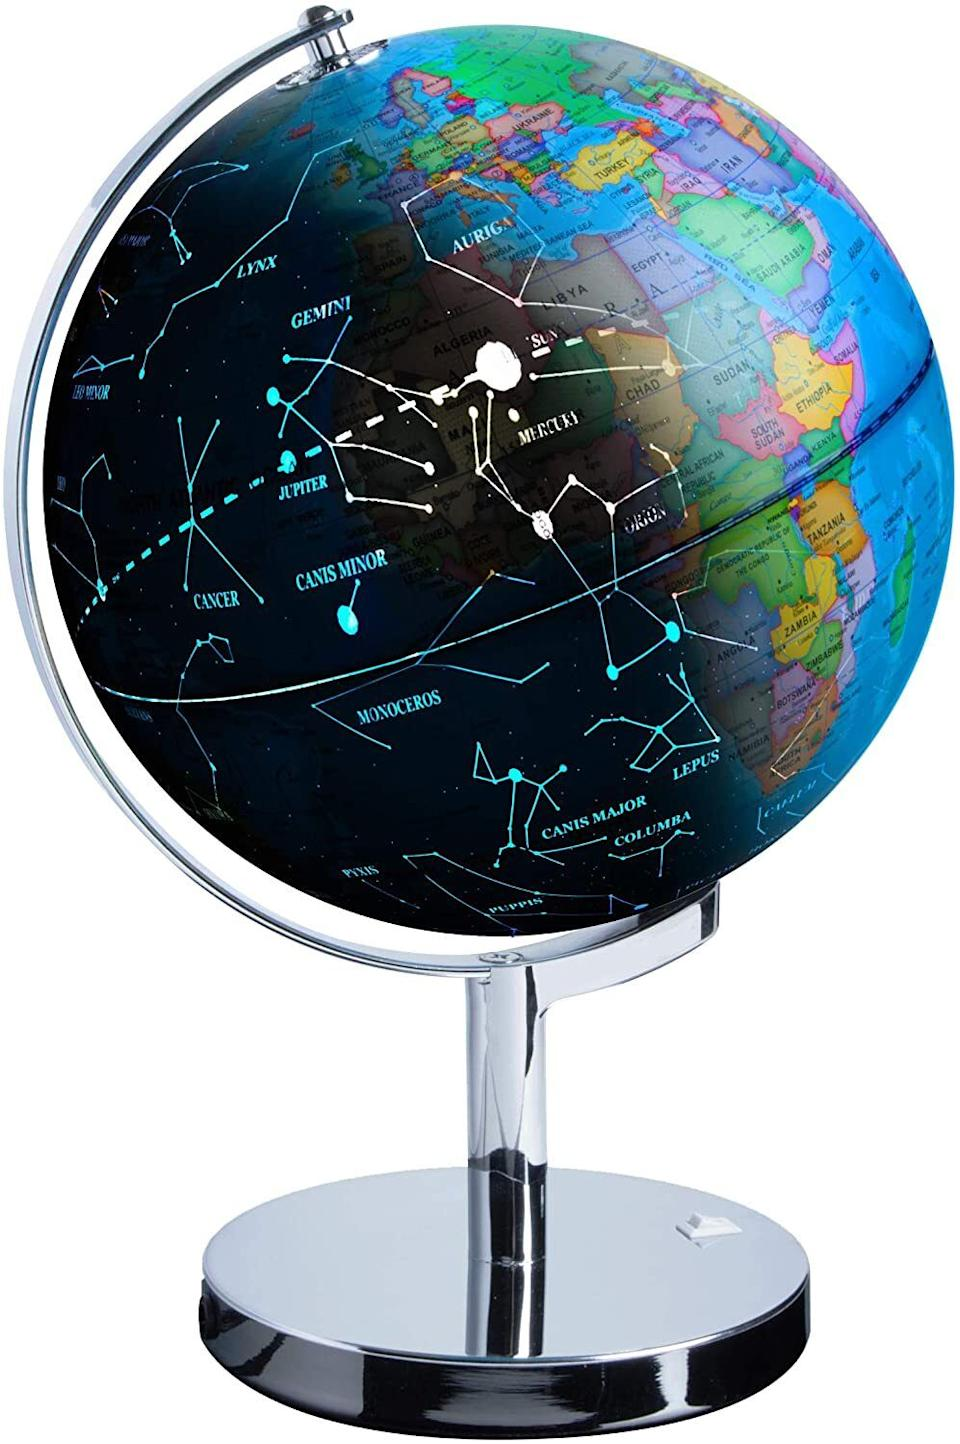 """You canilluminate your child about not only the world they live in, but the stars in the heavens above. And if that gets way too scary (or deep), that night-light will sure come in handy, too.<br /><br /><strong>Promising review:</strong>""""This is a wonderful globe. I bought this for my nephew and this is a fun way to give him the basics. He enjoys learning countries and he loves the night-light.<strong>The constellations are pretty cool in the dark. The size is perfect and the quality is amazing. The countries and regions are clear and they are easy to read. The base is strong and stable. It doesn't tip when spinning.</strong>The guidebook has more detailed information about the constellations and it's location. This globe definitely captured my nephew's attention and he is learning with interest. Overall, this is a perfect globe and can't go wrong with it."""" --<a href=""""https://www.amazon.com/dp/B071GRSLS7?tag=huffpost-bfsyndication-20&ascsubtag=5709944%2C9%2C32%2Cd%2C0%2C0%2C0%2C962%3A1%3B901%3A2%3B900%3A2%3B974%3A3%3B975%3A2%3B982%3A2%2C13752245%2C0"""" target=""""_blank"""" rel=""""noopener noreferrer"""">Lucky10z</a><br /><br /><strong>Get it from Amazon for <a href=""""https://www.amazon.com/dp/B071GRSLS7?tag=huffpost-bfsyndication-20&ascsubtag=5709944%2C9%2C32%2Cd%2C0%2C0%2C0%2C962%3A1%3B901%3A2%3B900%3A2%3B974%3A3%3B975%3A2%3B982%3A2%2C13752245%2C0"""" target=""""_blank"""" rel=""""noopener noreferrer"""">$42.45</a>.</strong>"""